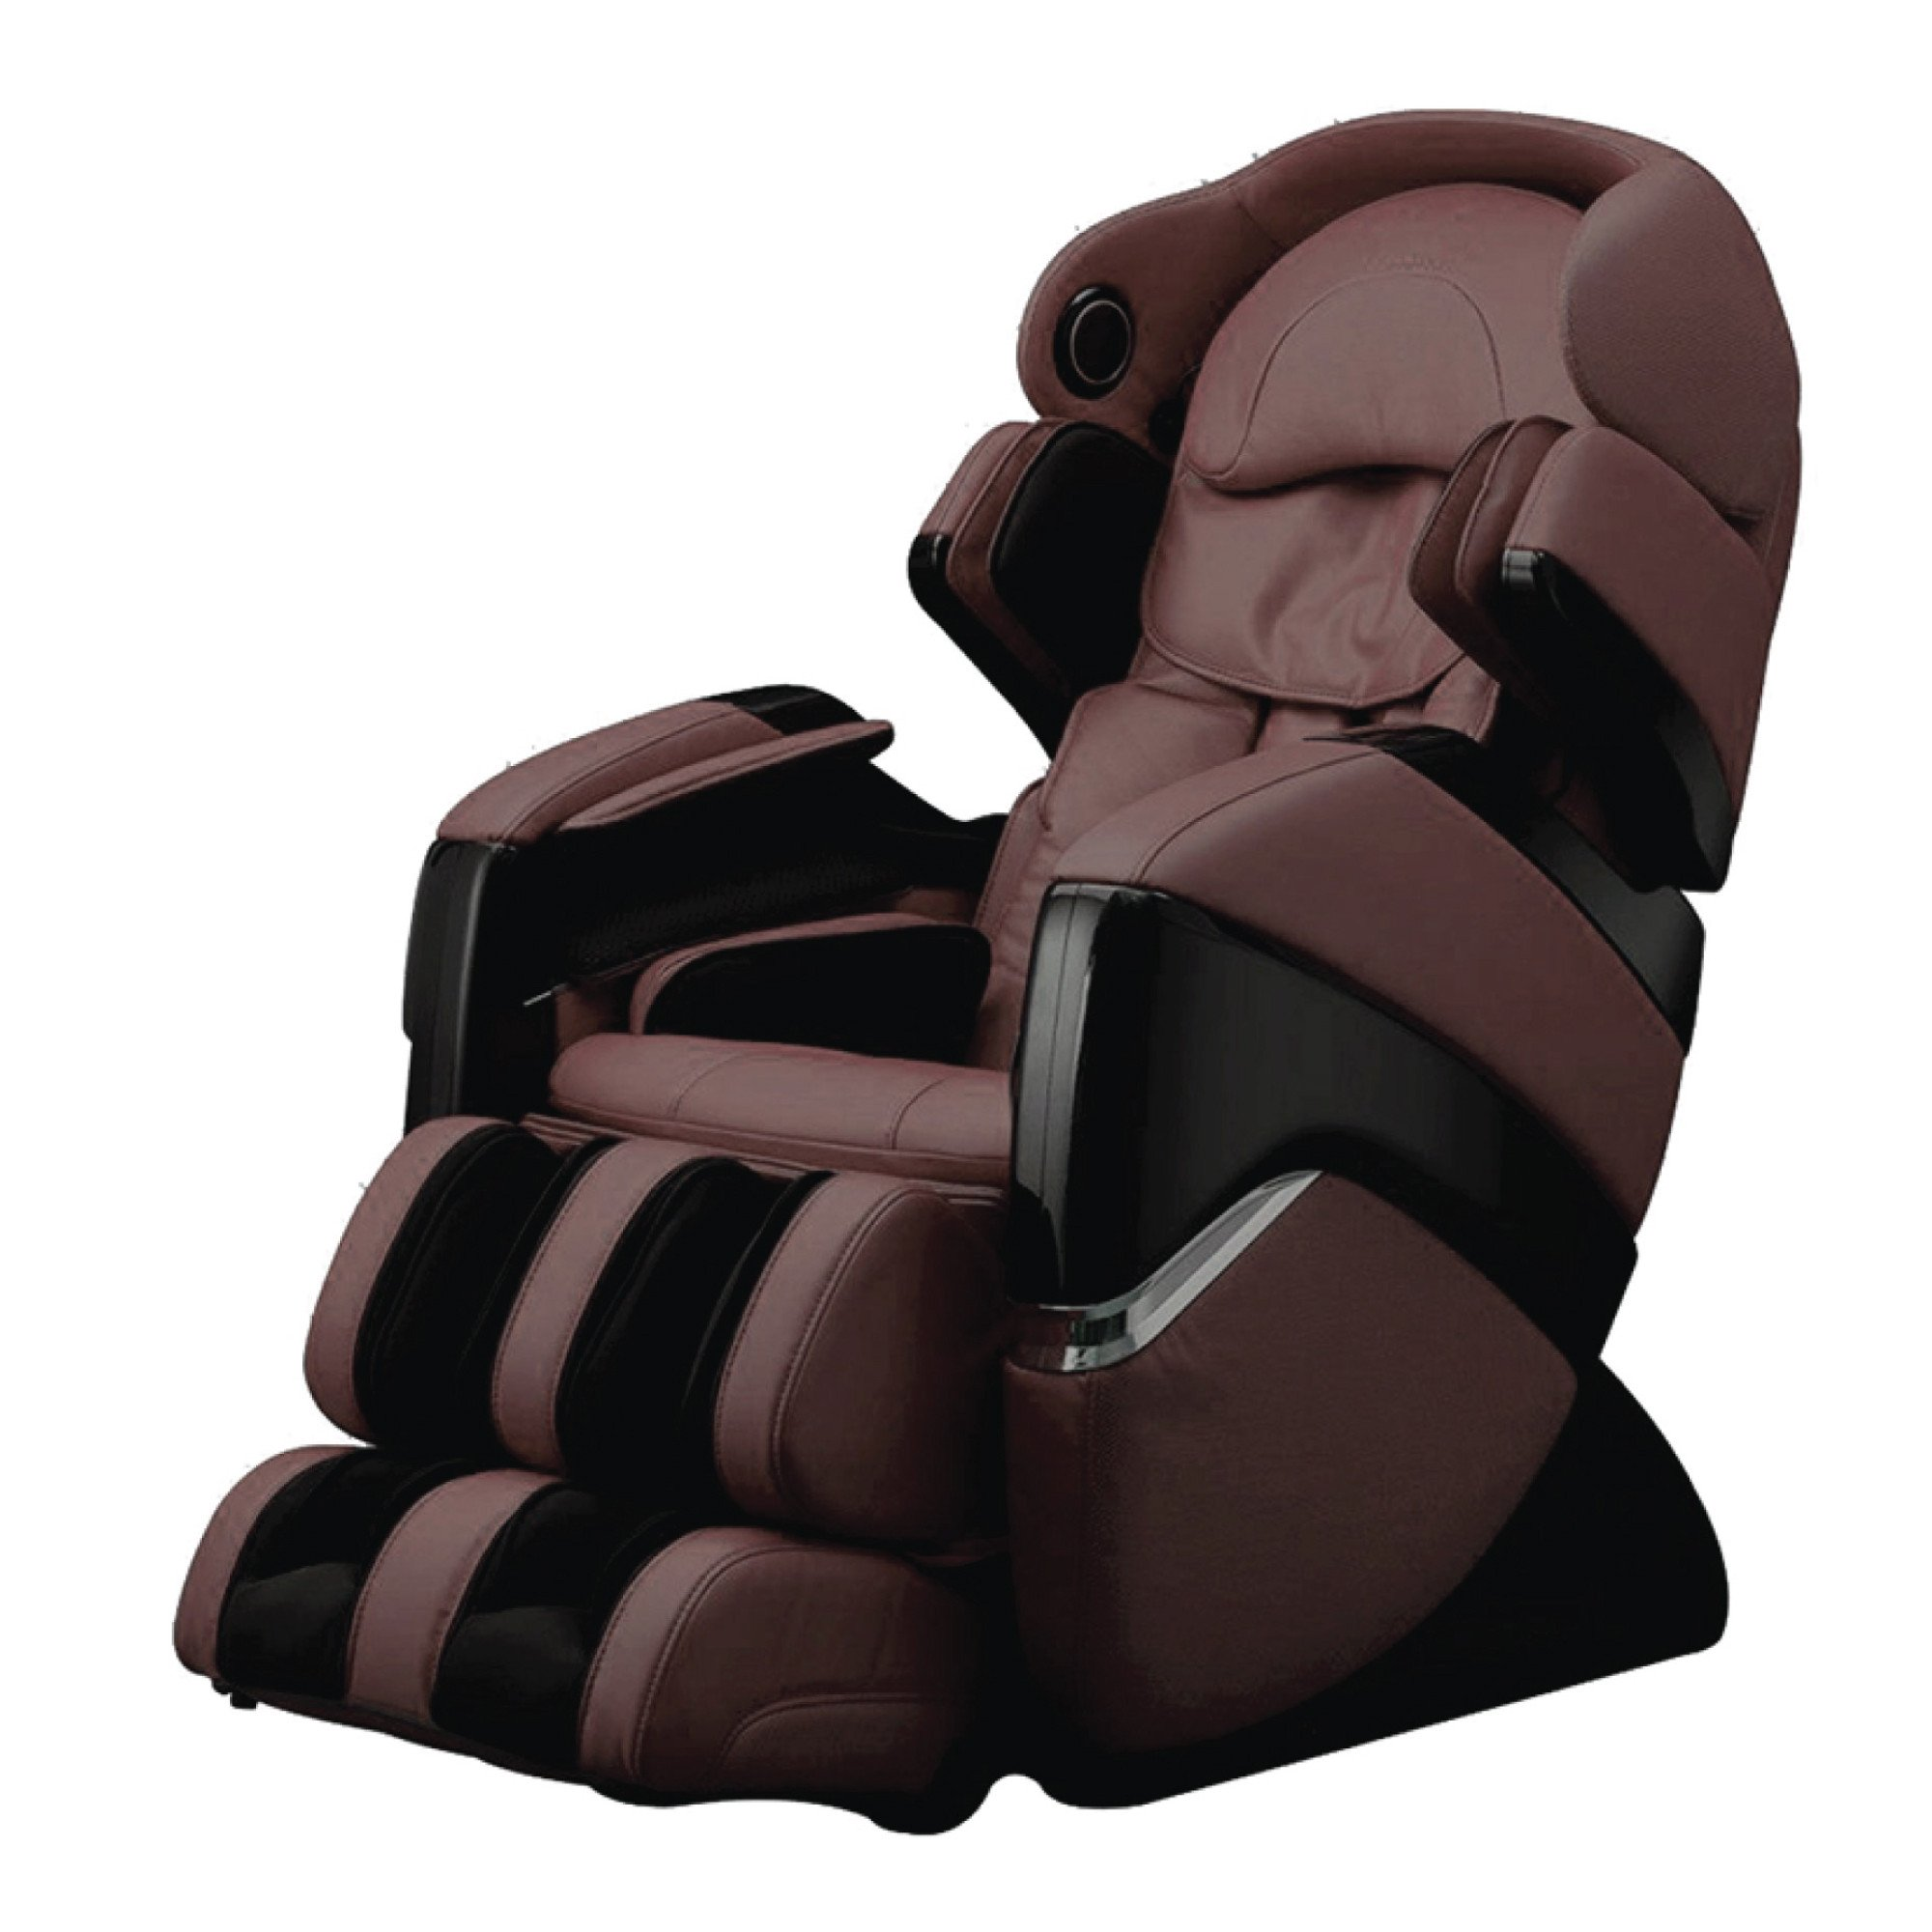 Osaki 3D Pro Cyber Massage Chair - Brown - Front Angle View